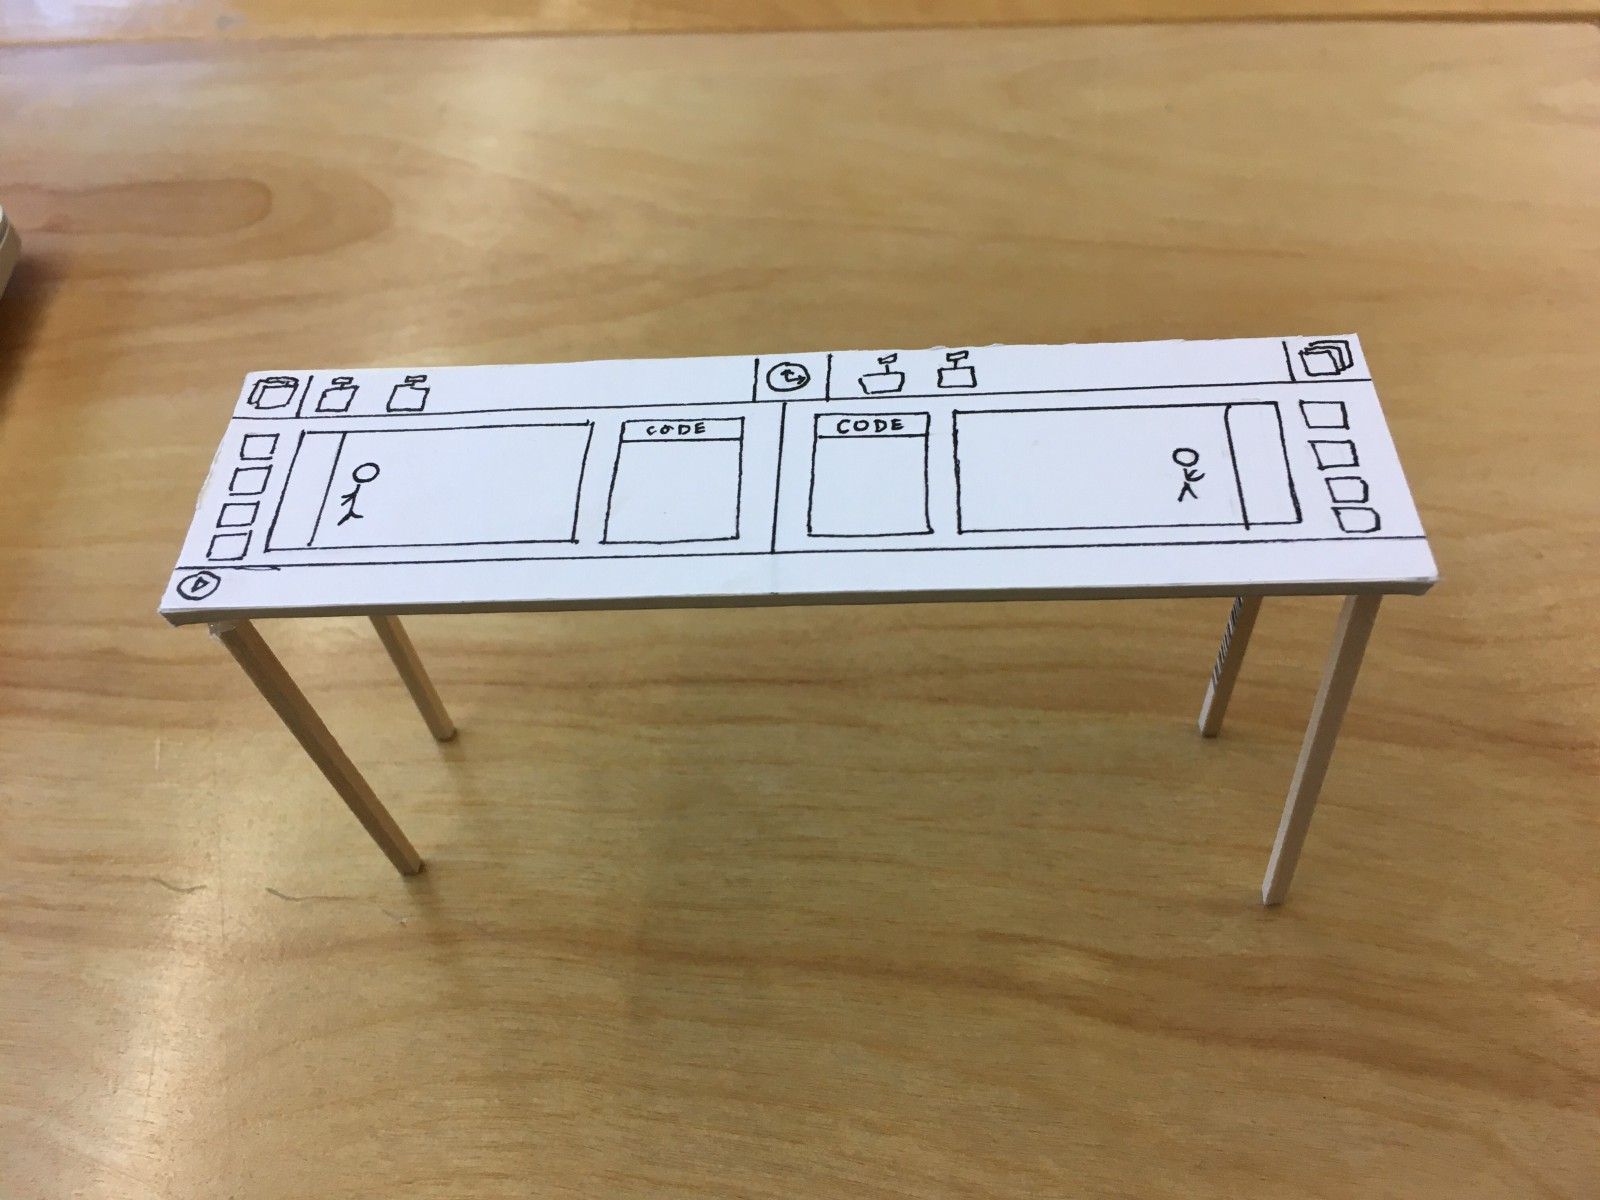 prototype we made before making the physical table